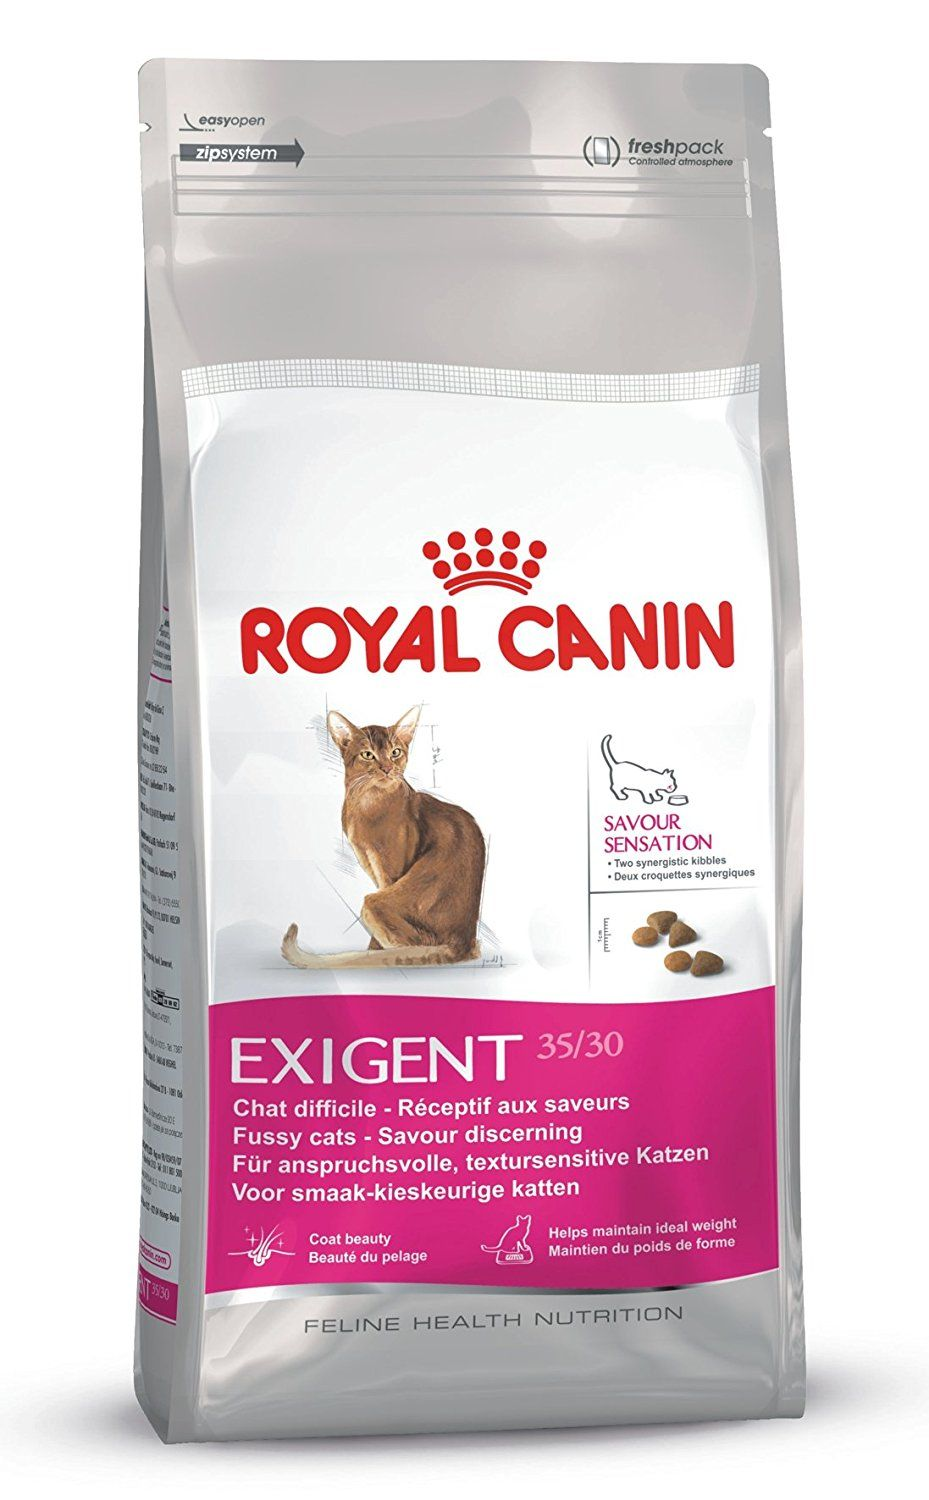 Royal Canin Cat Exigent 35 30 400g Want Additional Info Click On The Image This Is An Affiliate Link And I Rec Cat Food Cat Food Allergy Cat Food Reviews